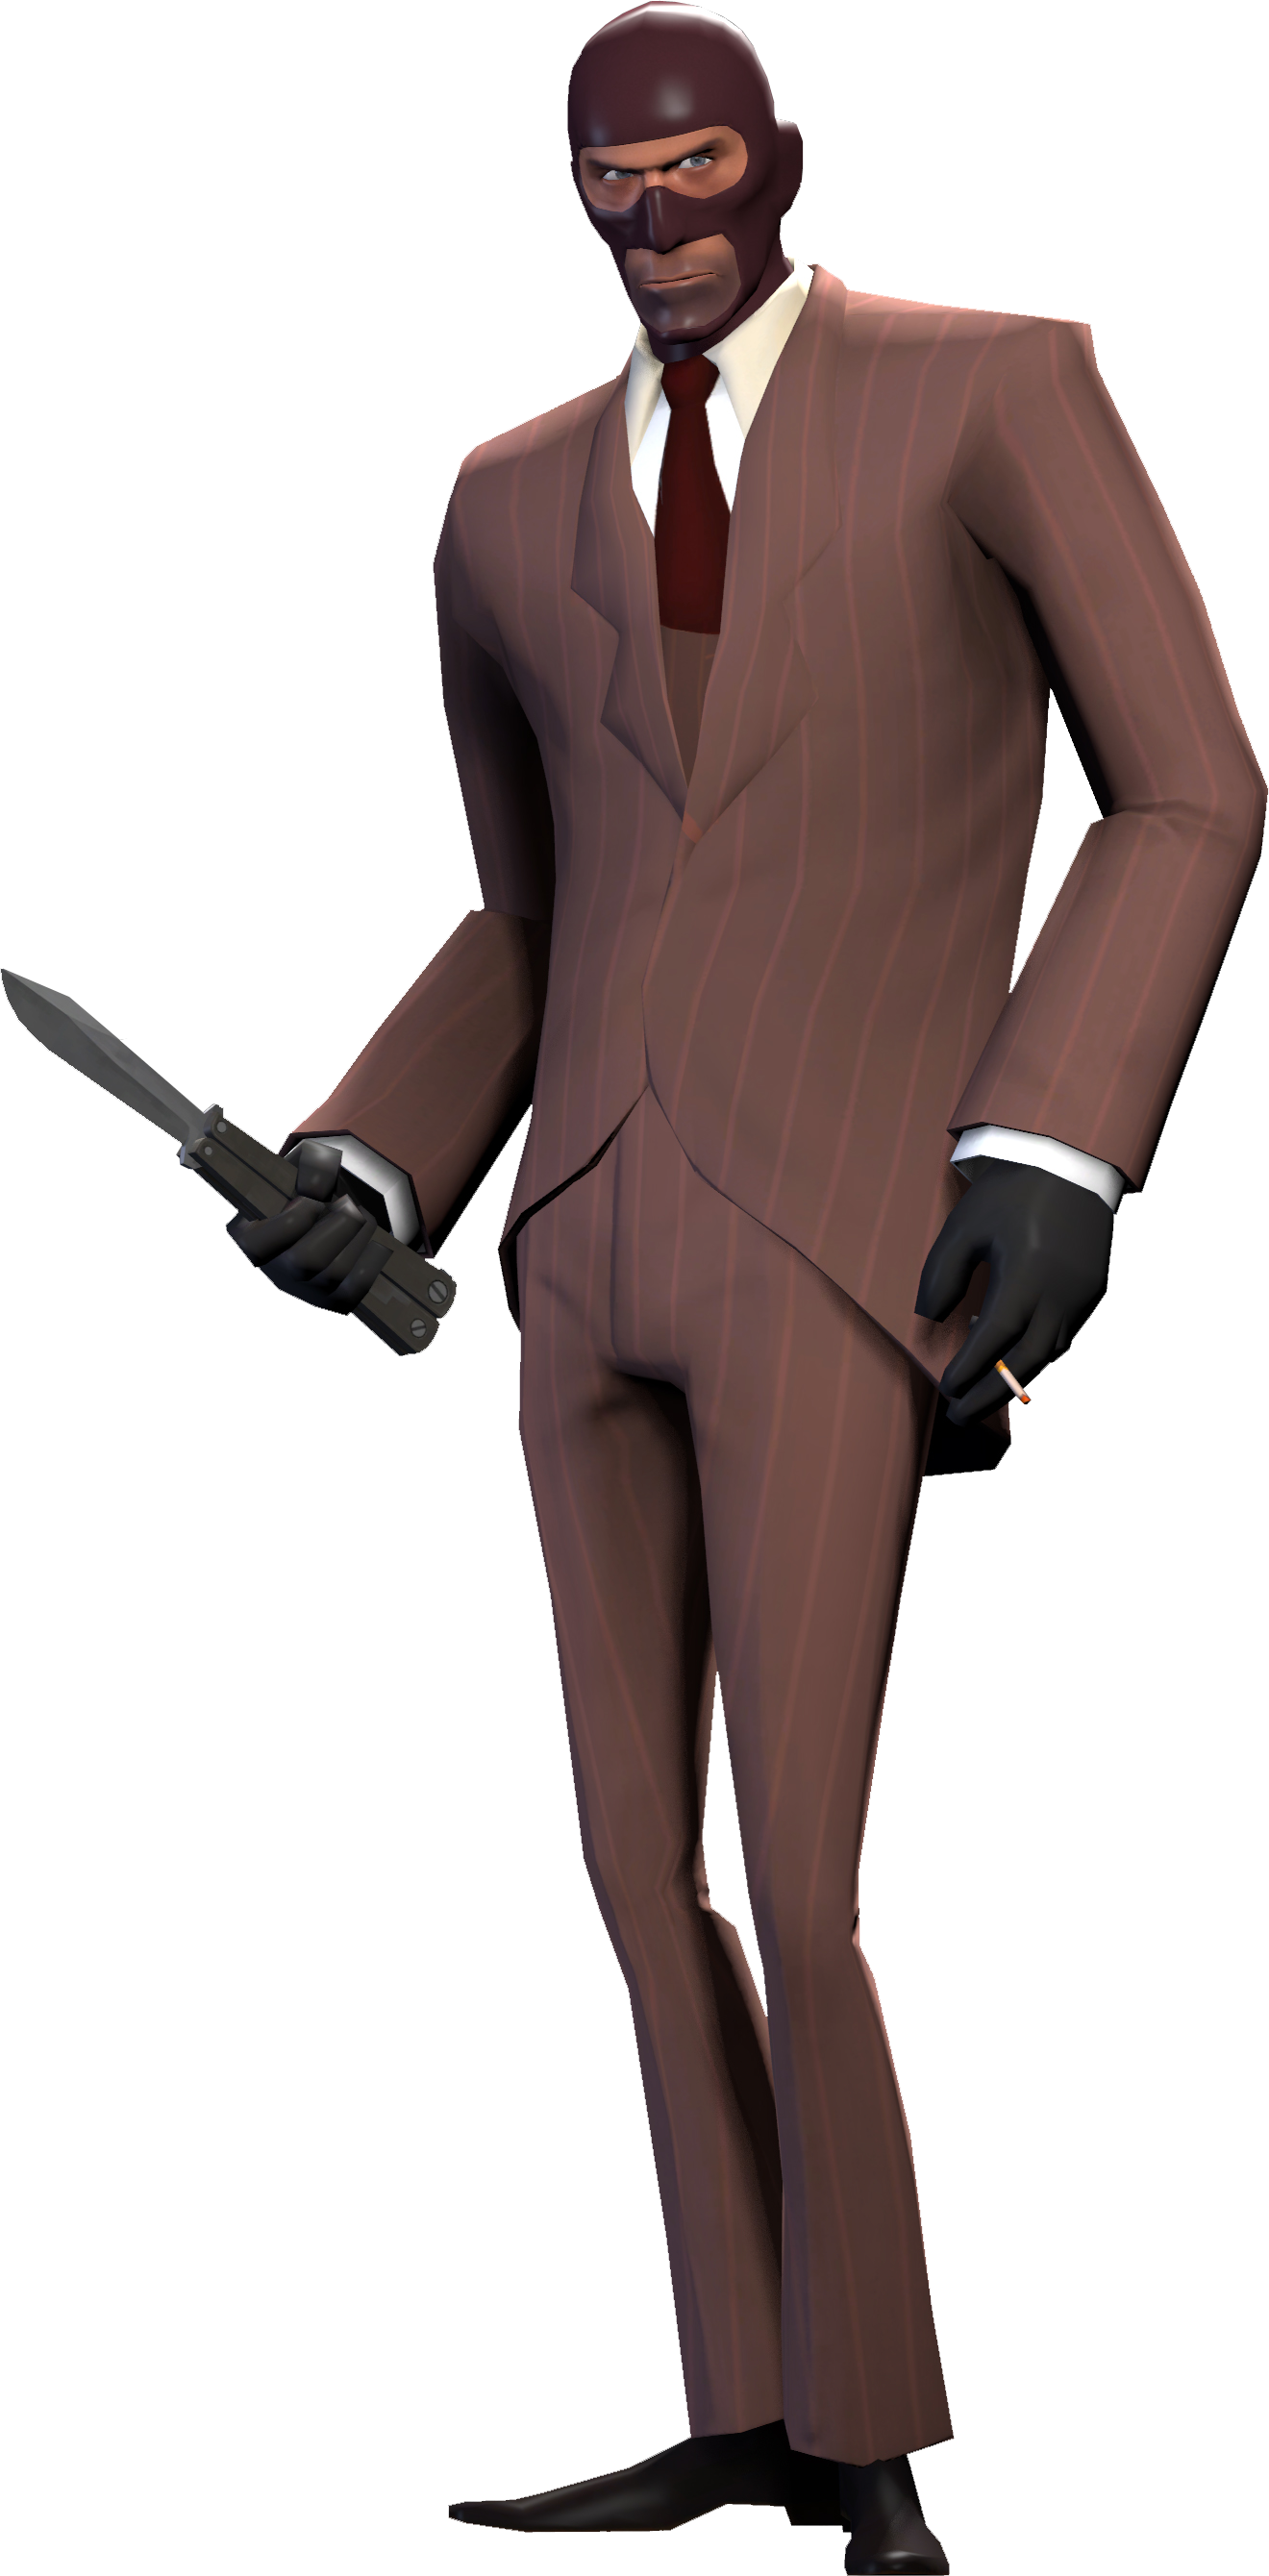 The Spy Team Fortress 2 Deadliest Fiction Wiki Fandom